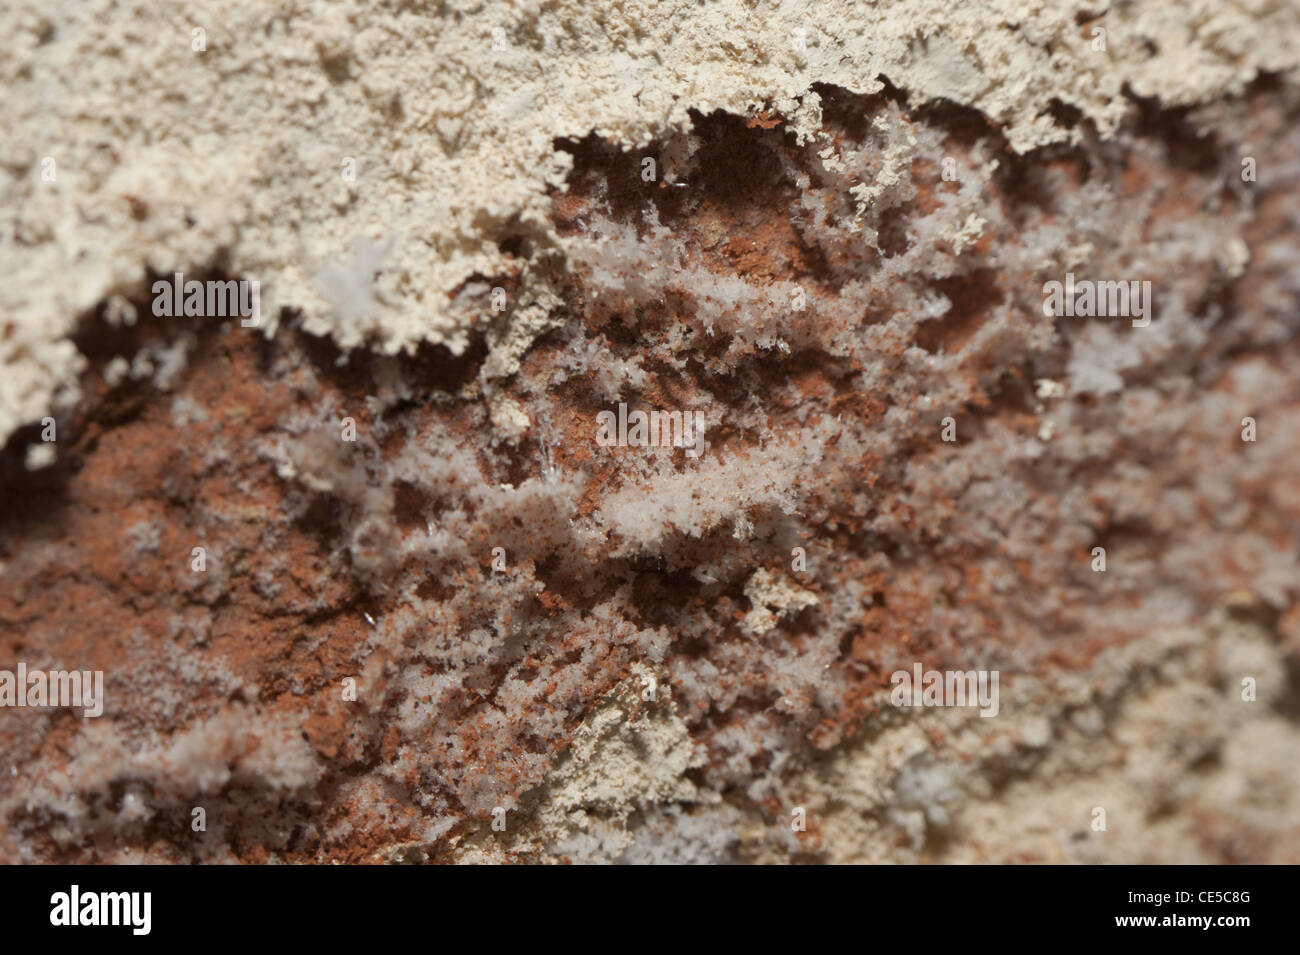 Macro shot of salts being leech out of a brick wall by raising damp - Stock Image